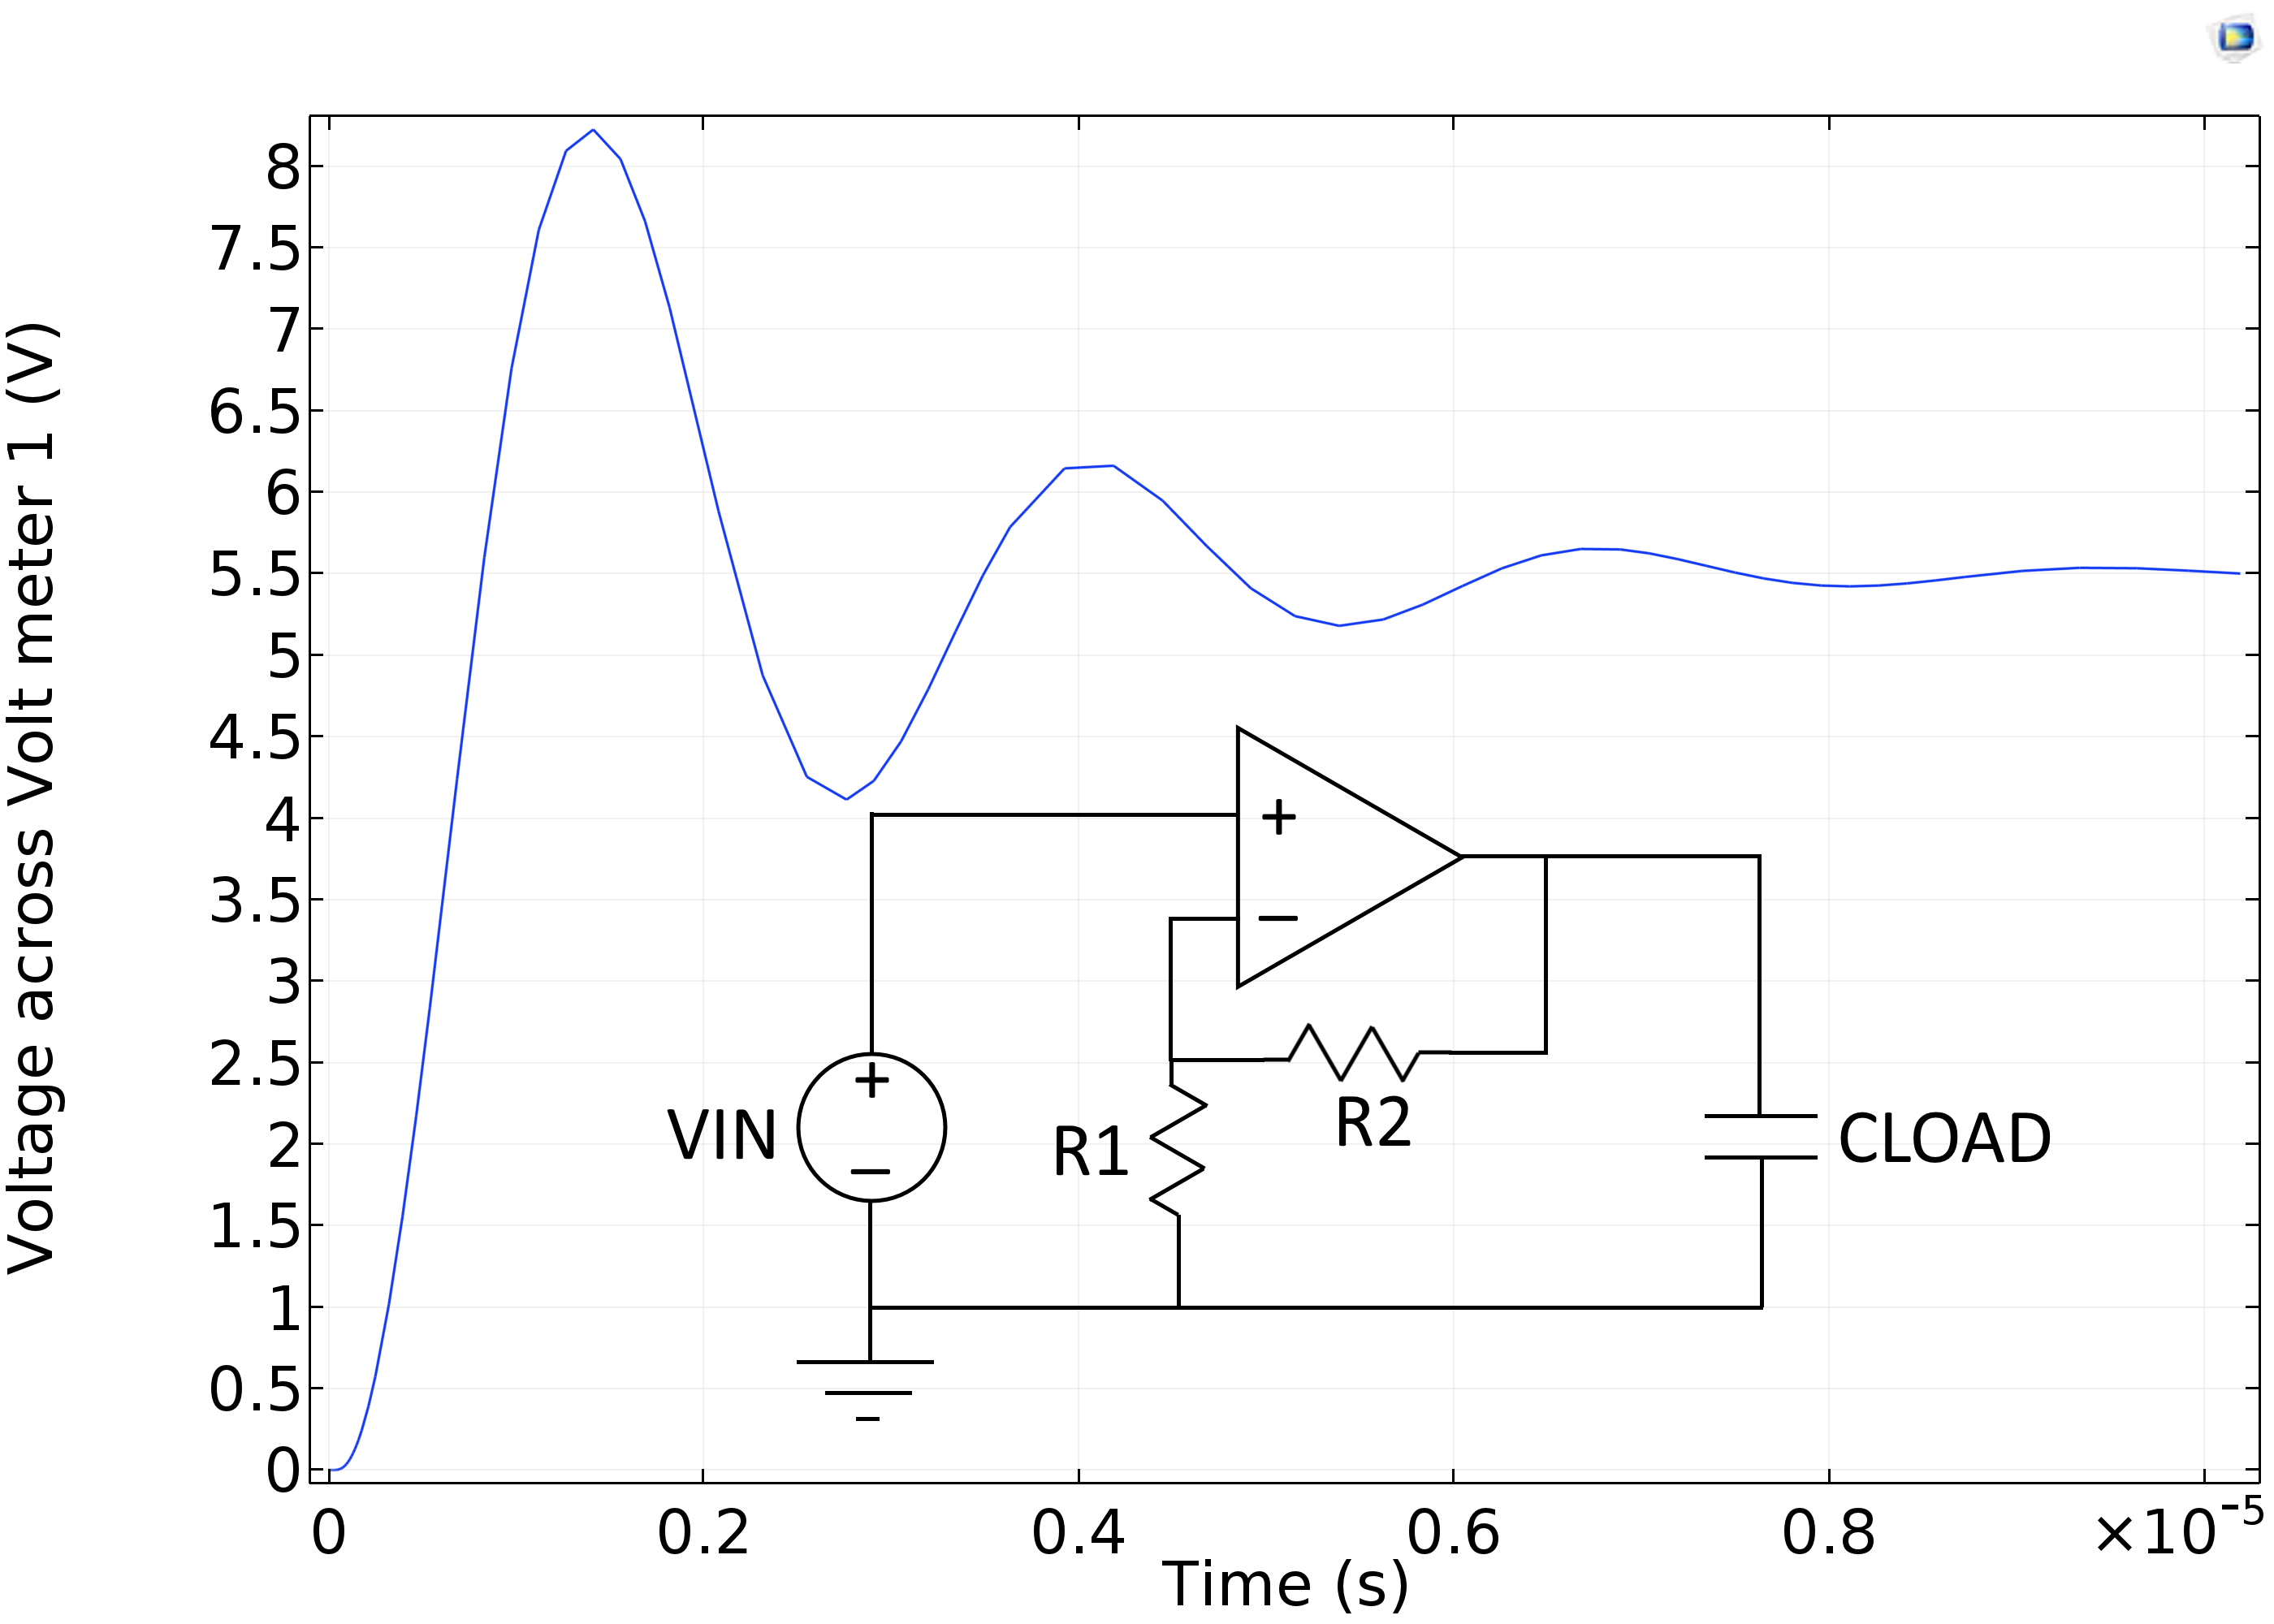 Ac Dc Module Updates Comsol 53 Release Highlights Physics Tutorial Parallel Circuits Hazard Lights A Plot From The Operational Amplifier With Capacitive Load Model